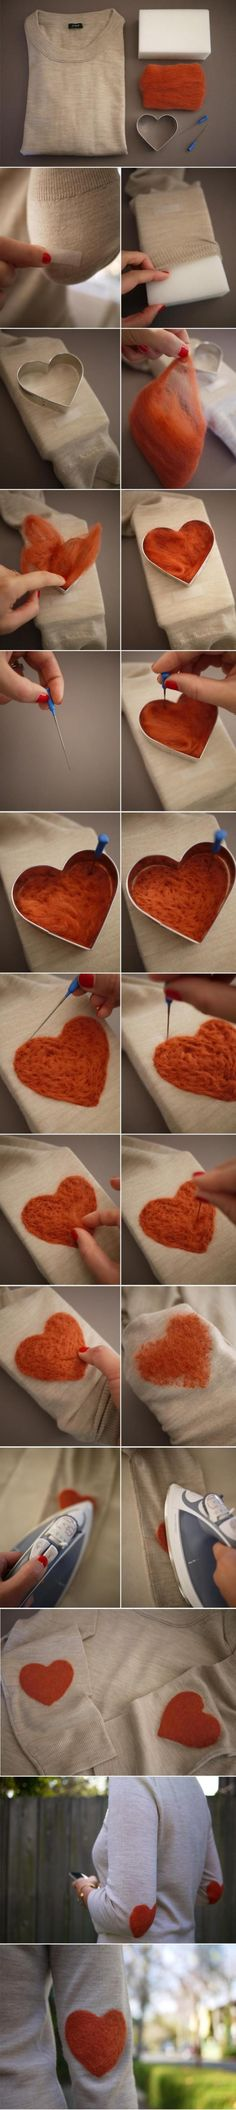 Heart elbow patches!